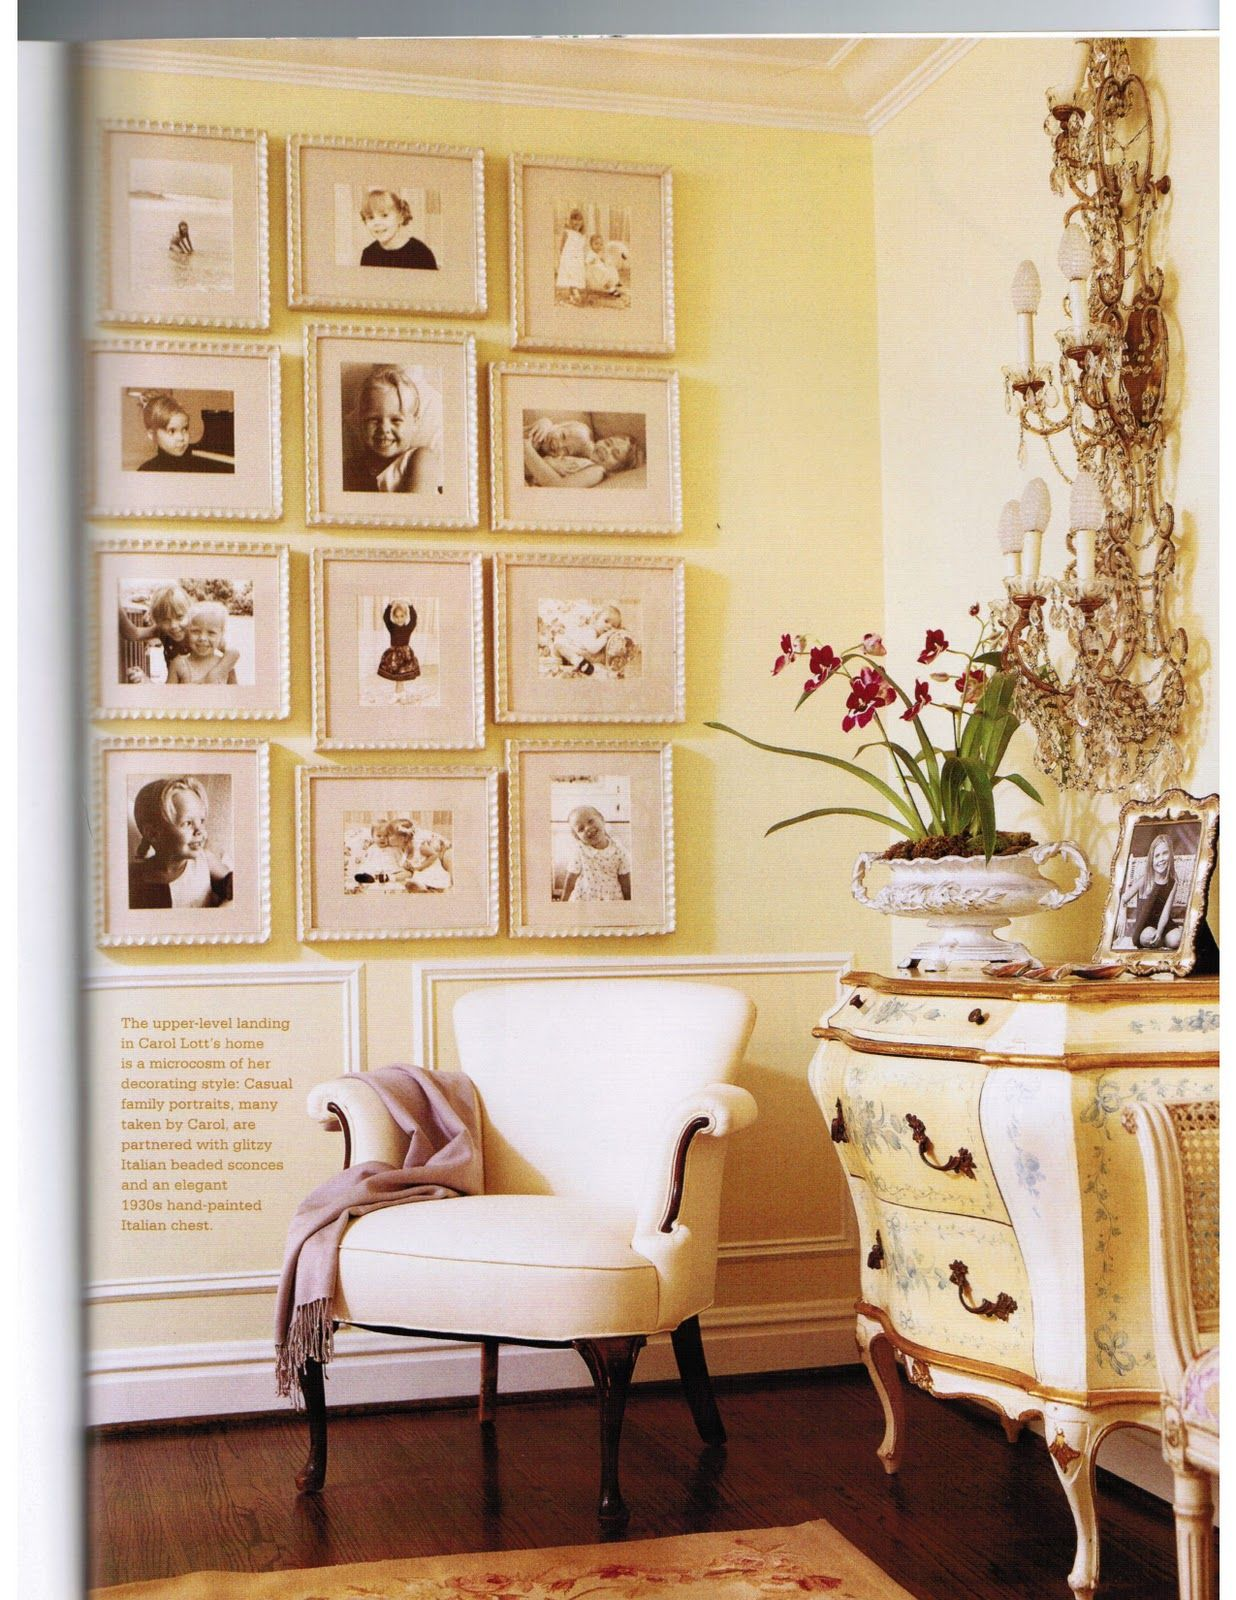 Home Decor Yellow Walls French Country Enchanting Yellow And White Family Picture